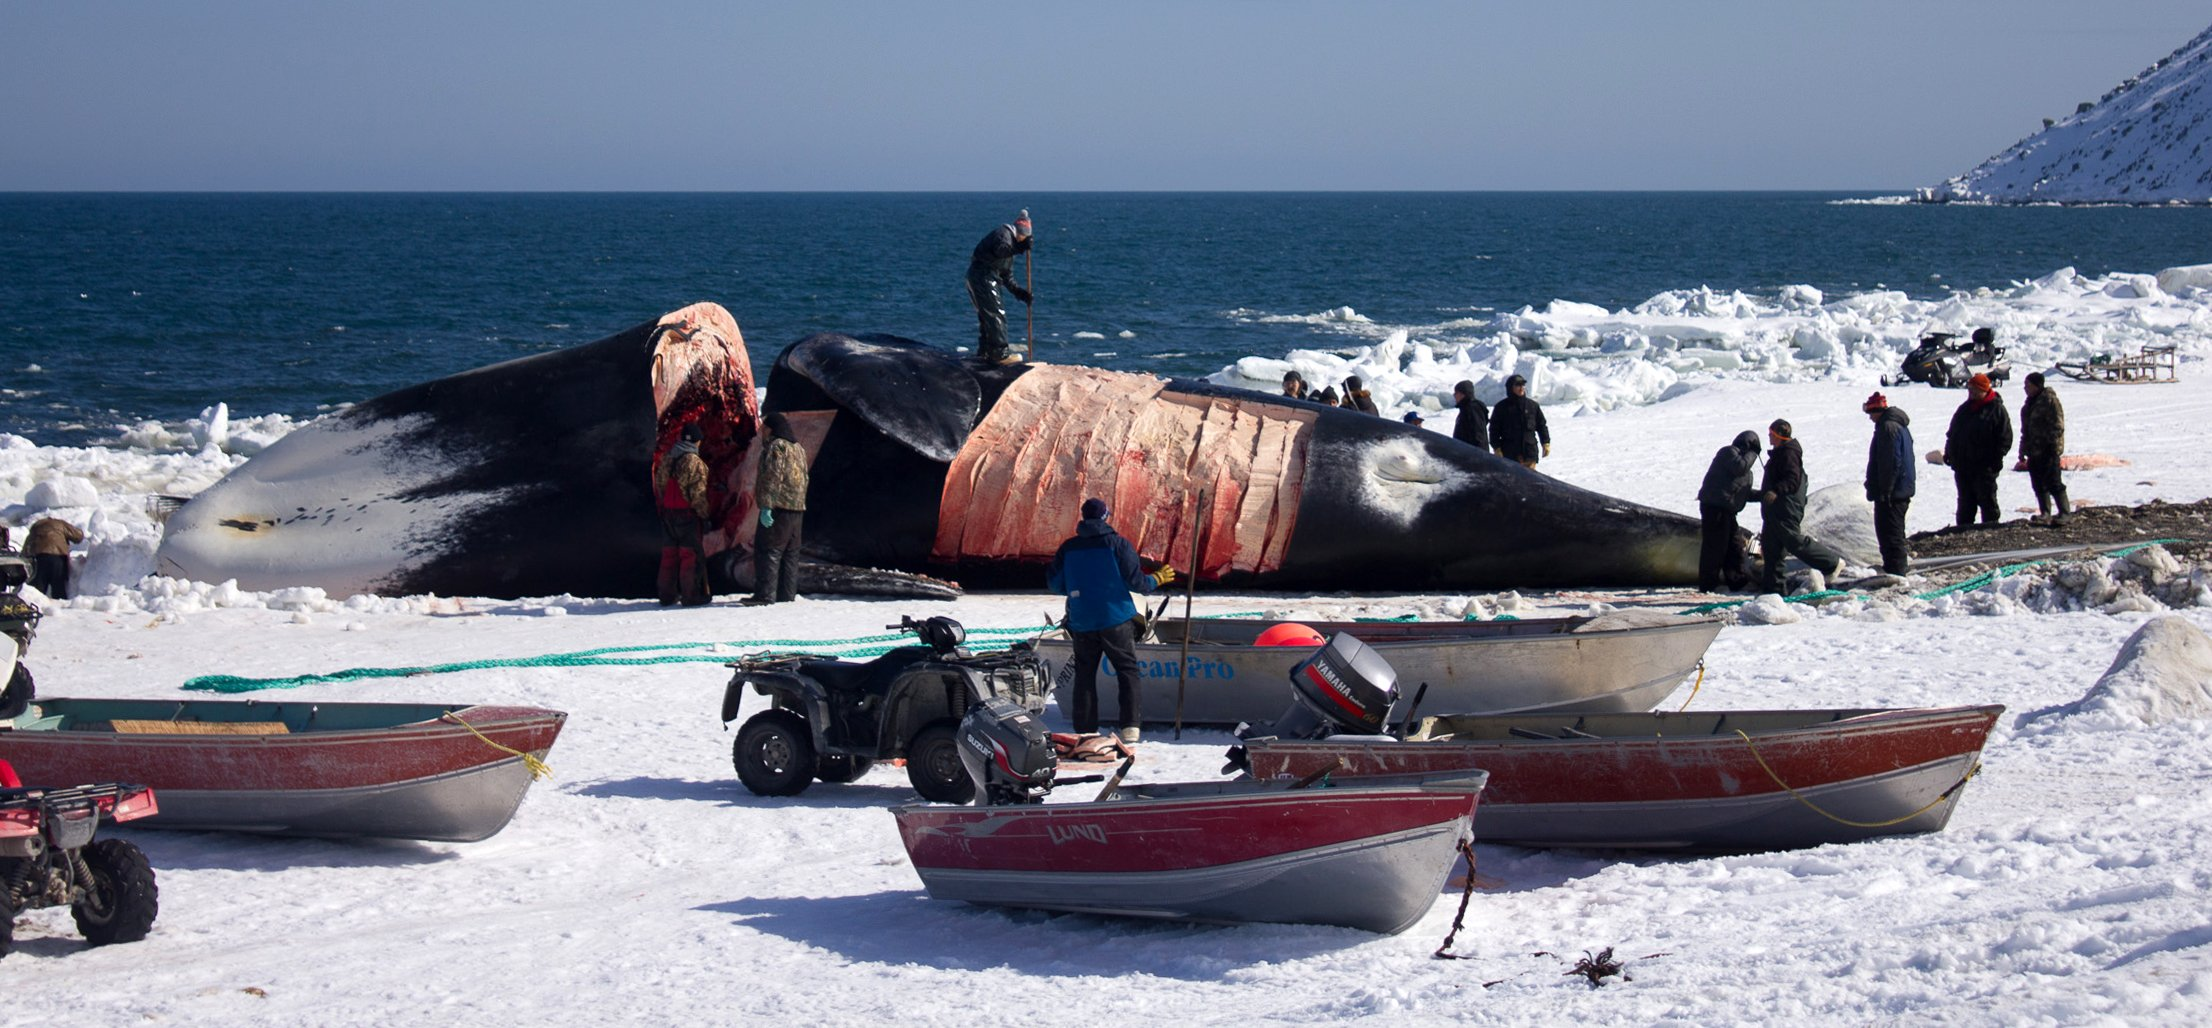 Sea Shepherd and others attacking Native whaling are allies of conquest